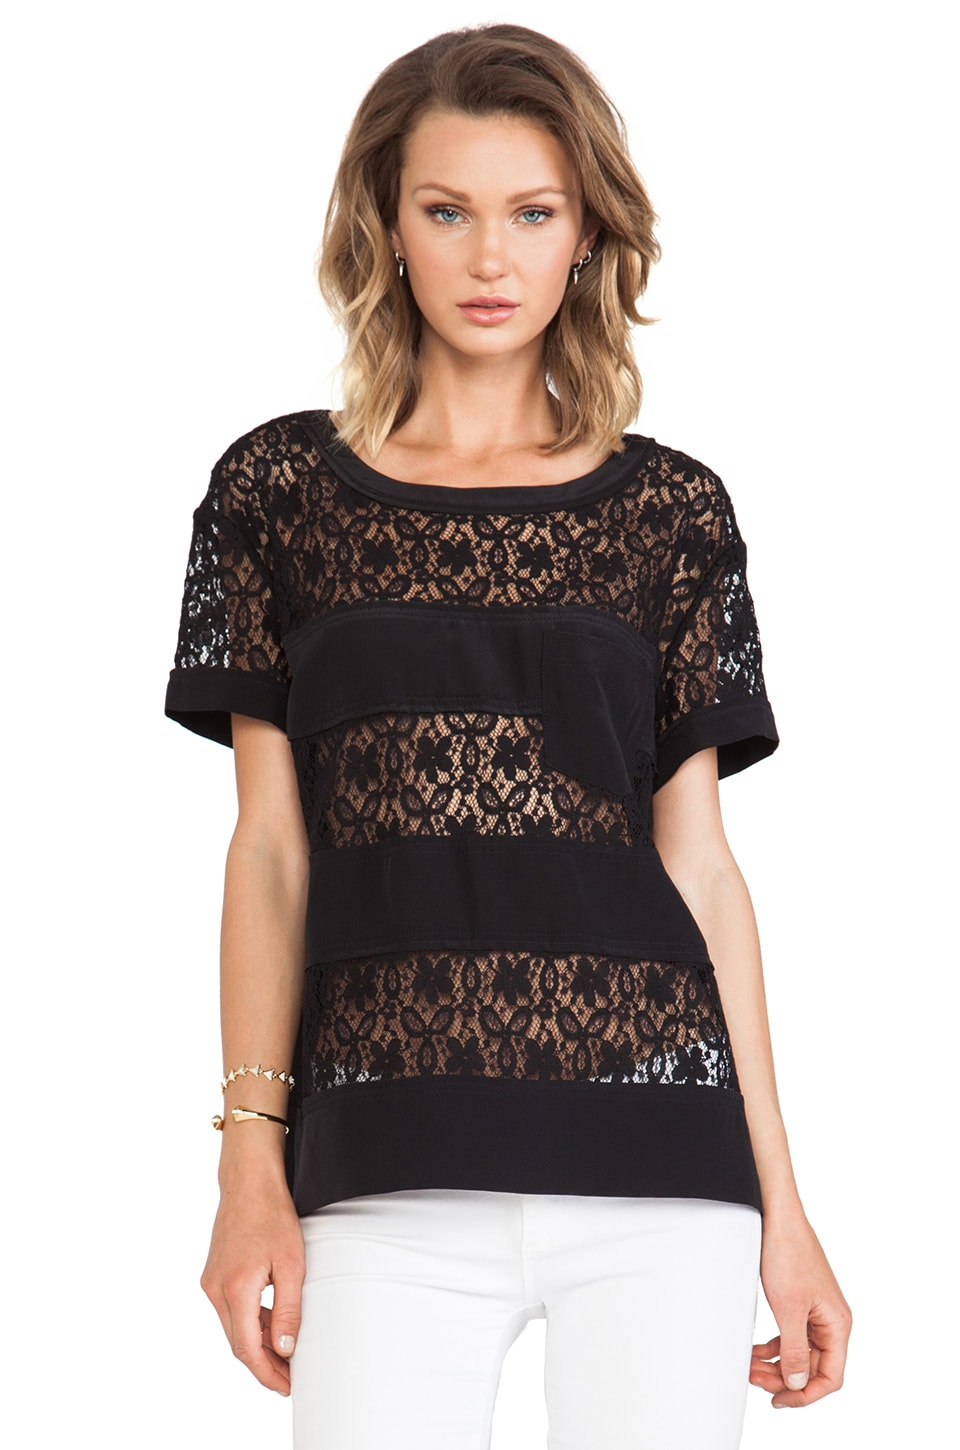 Marc by Marc Jacobs Leila Lace Top in Black